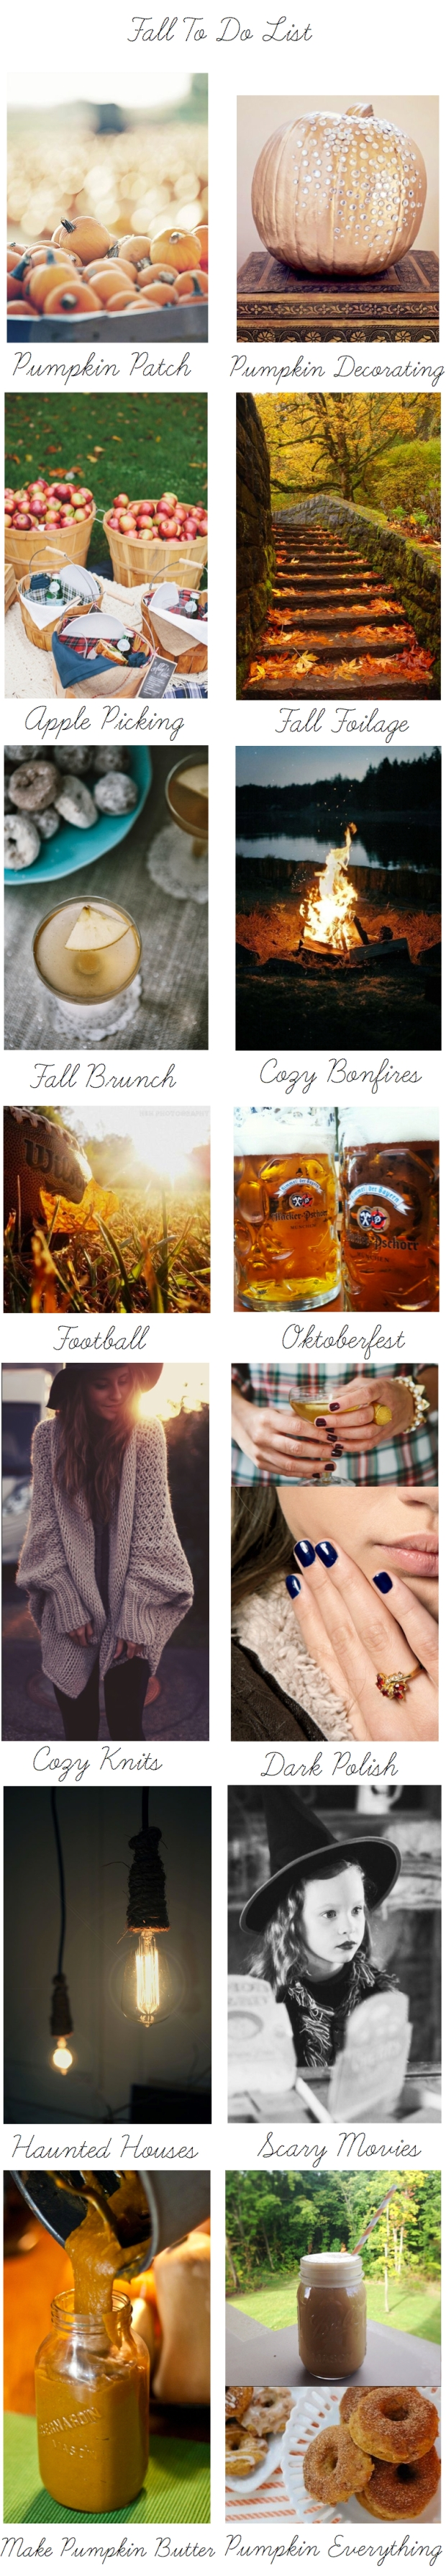 The Subtle Statement | Fall To Do List